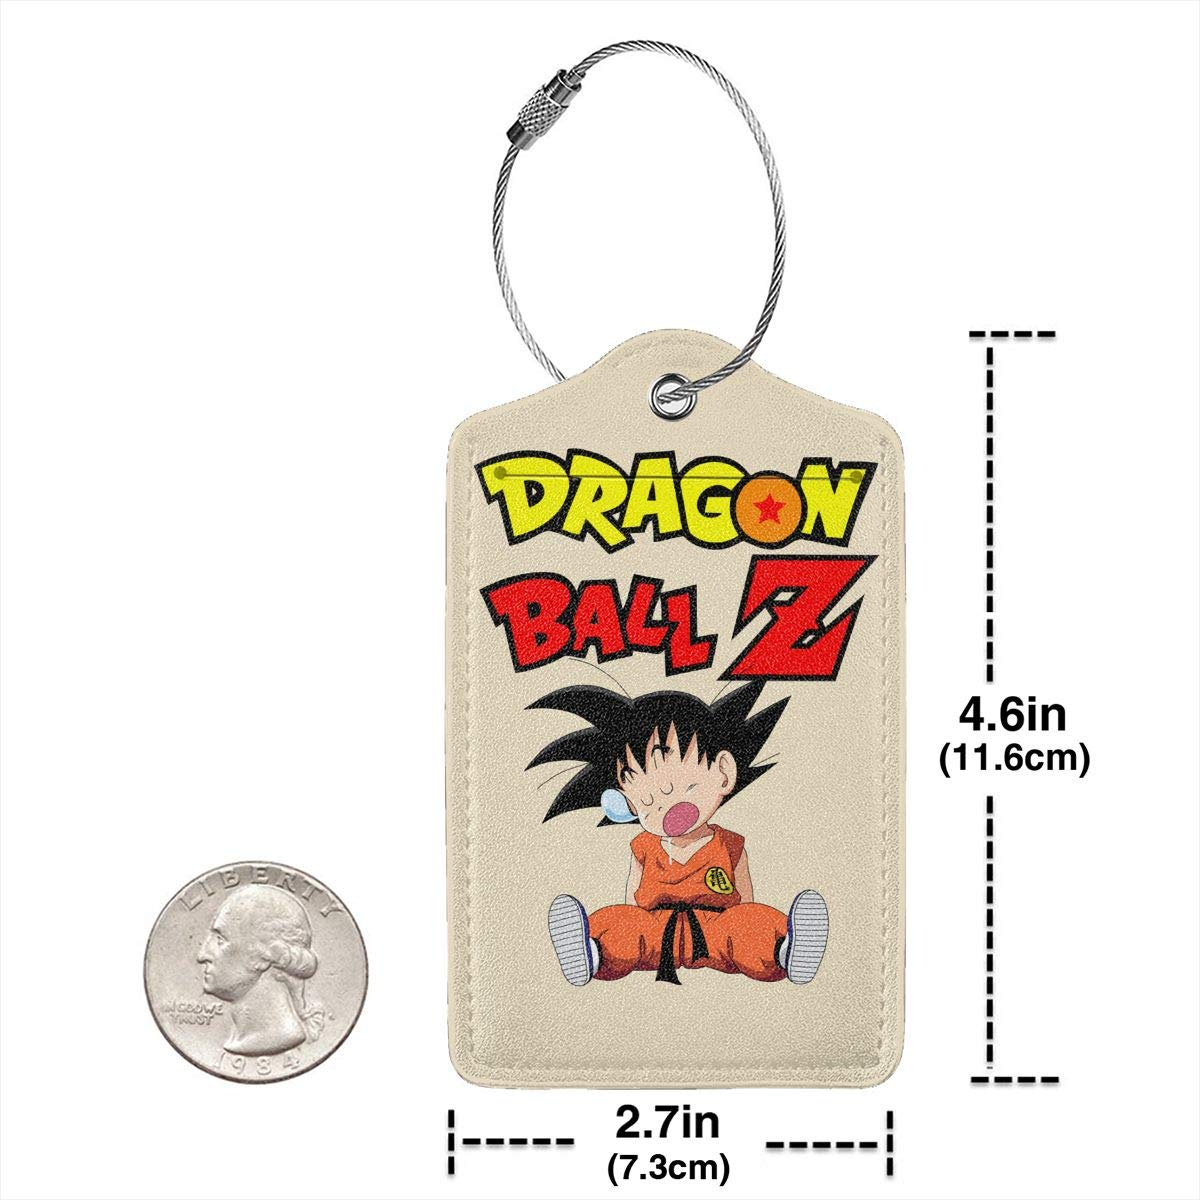 Dragon Ball Son Goku Fall Asleep Leather Luggage Tag Travel ID Label For Baggage Suitcase